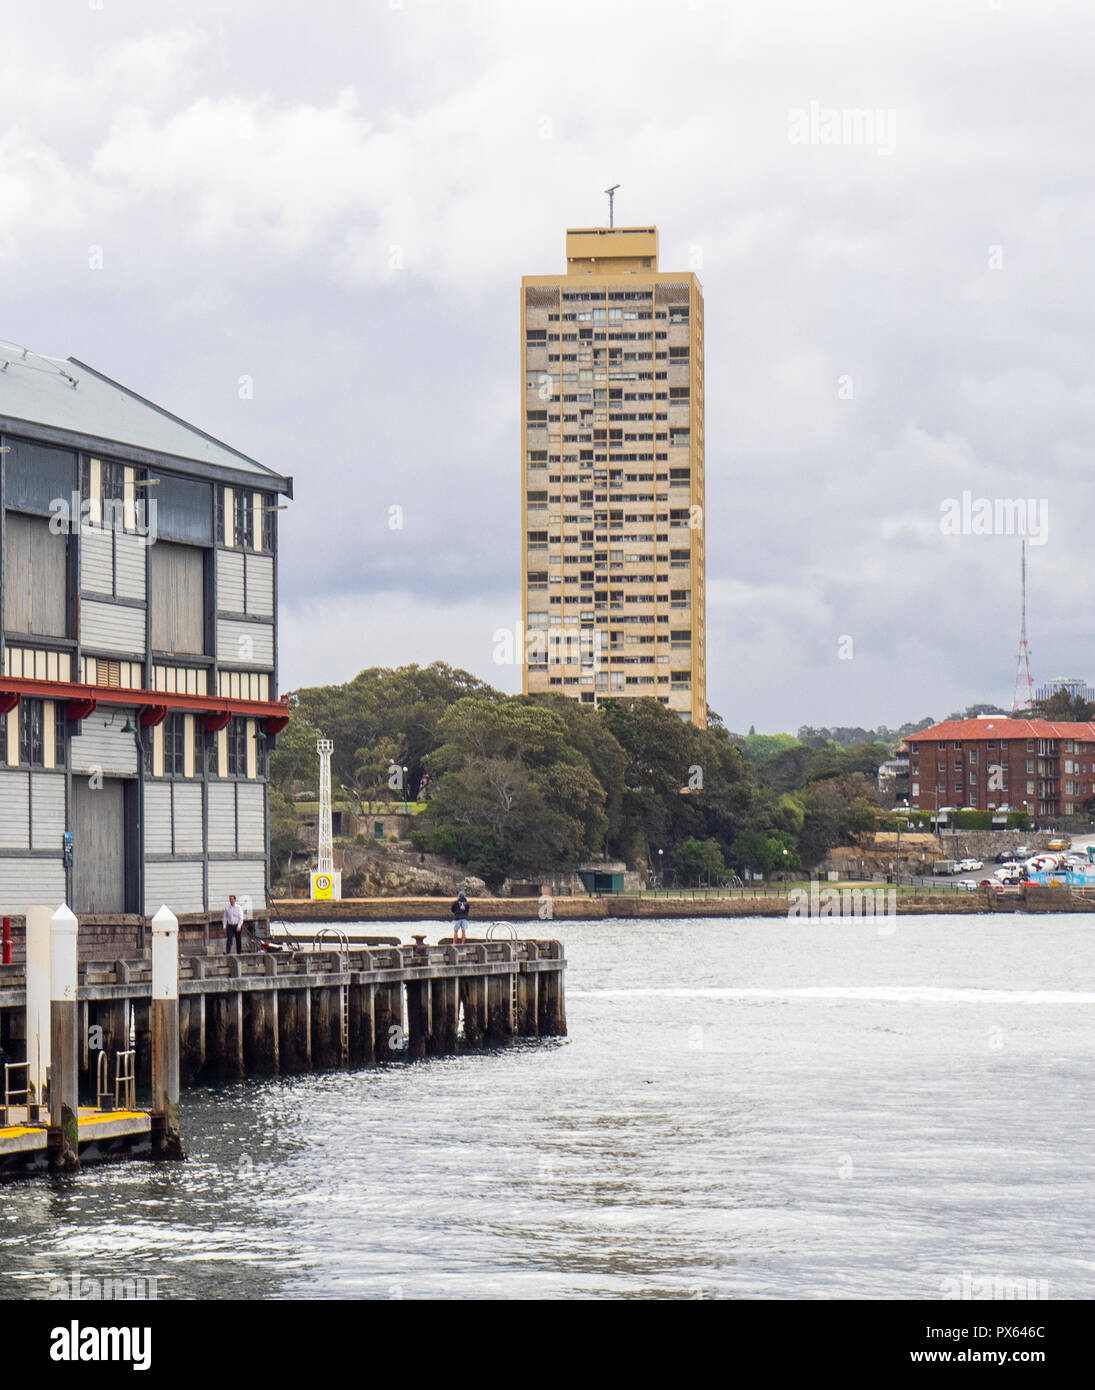 Blues point Tower residential tower and end of Pier 2/3 Walsh Bay Wharves precinct Sydney NSW Australia. - Stock Image